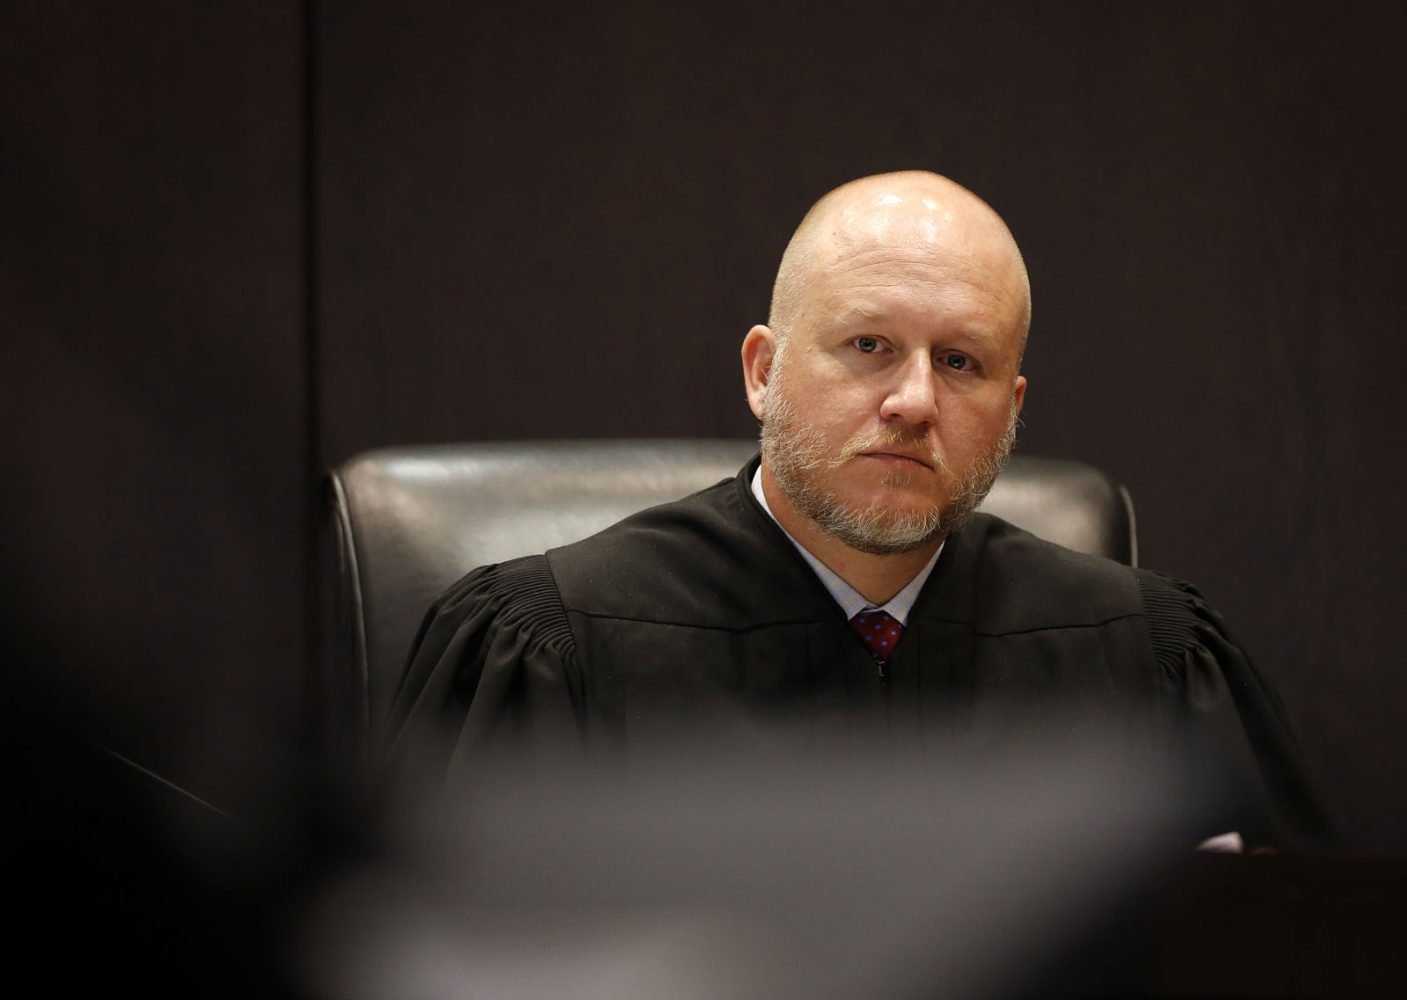 Circuit Court Judge James Colaw presides over the Pedro Bravo murder trial in courtroom 1B of the Alachua County Criminal Justice Center Friday, August 8, 2014.  Bravo is accused of killing University of Florida student Christian Aguilar.  (Doug Finger/The Gainesville Sun/Pool)